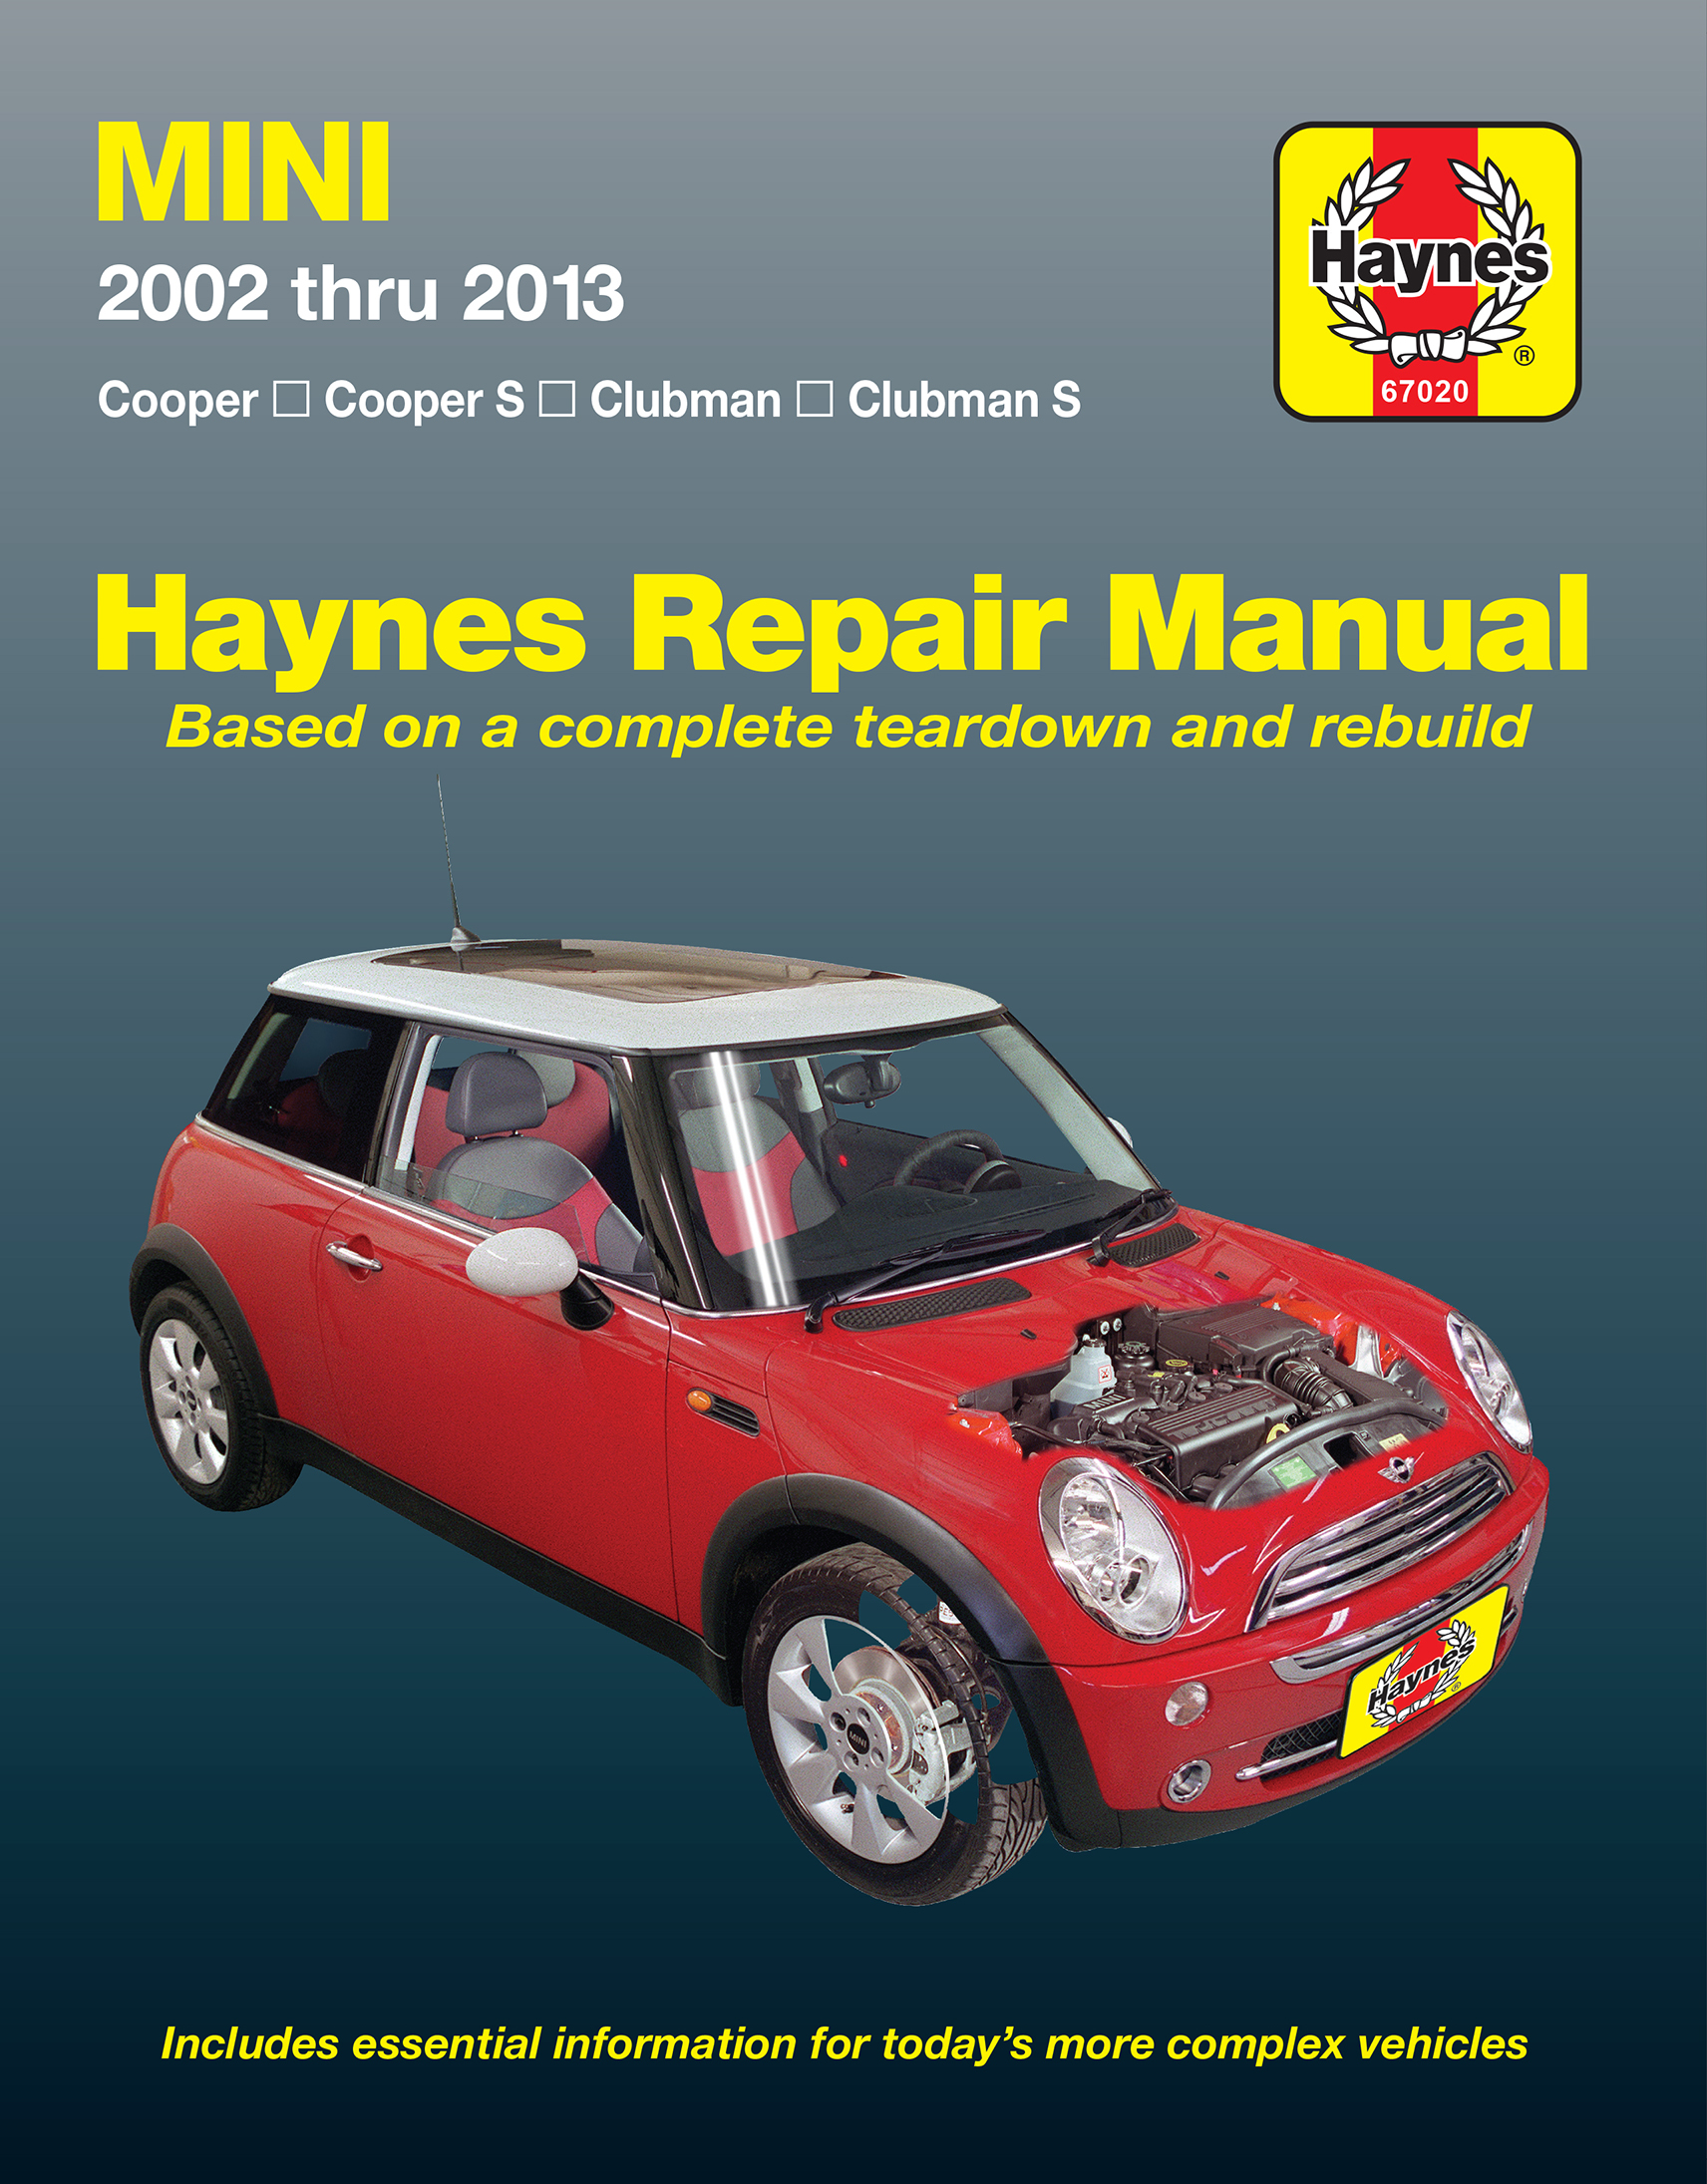 'Mini Cooper, Cooper S, Clubman & Clubman S (2002-2013) Haynes Repair Manual (usa)